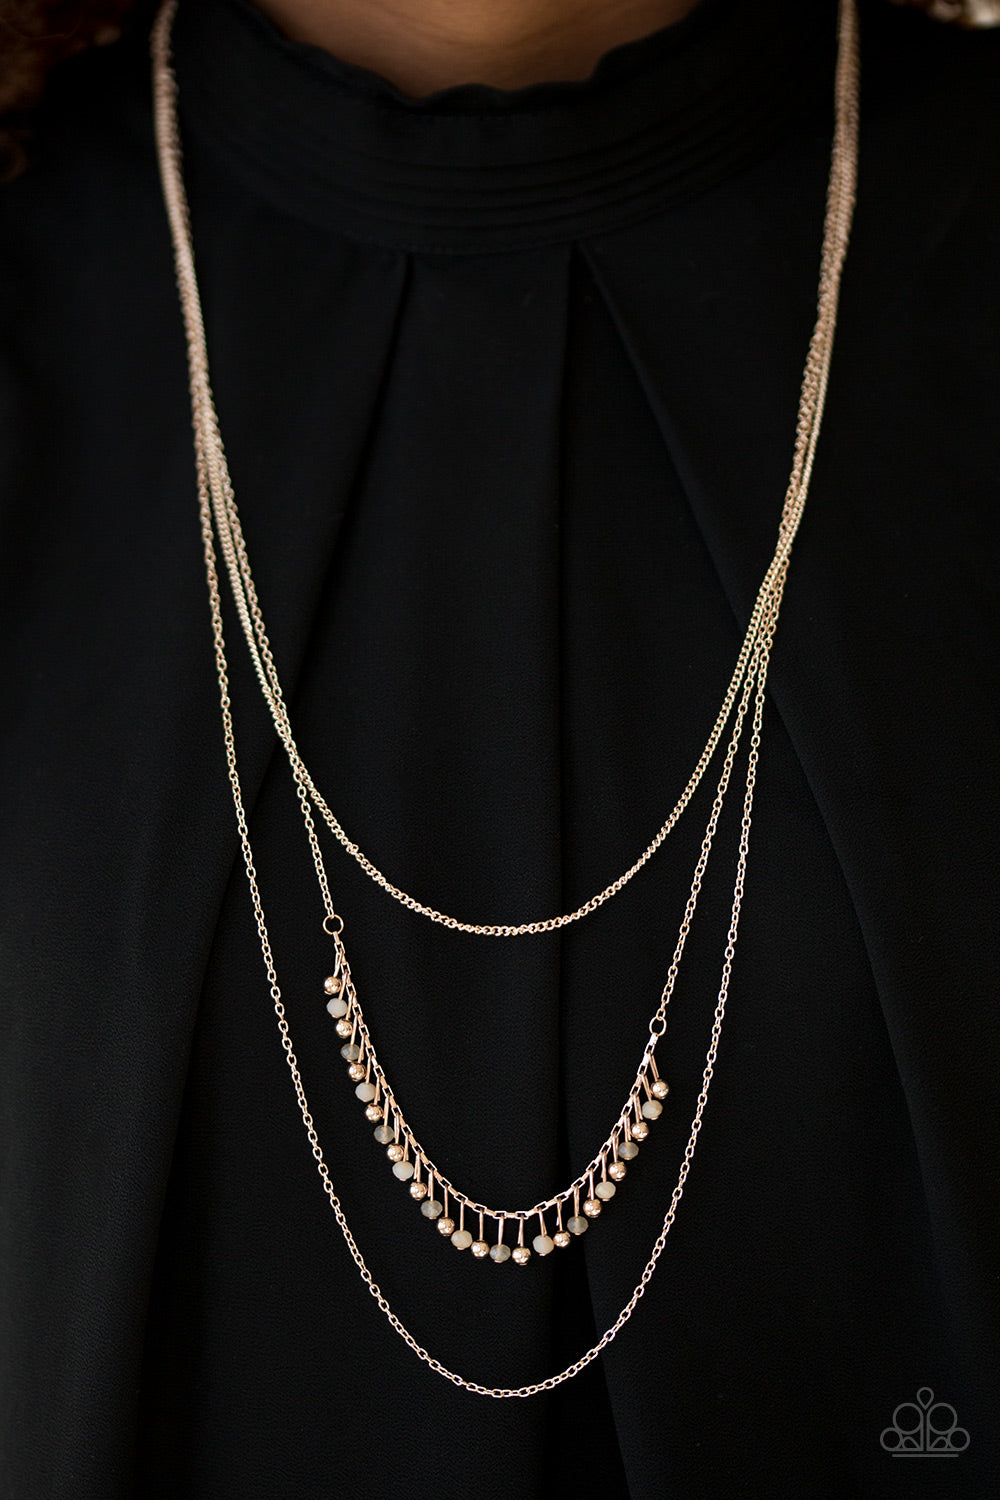 Twinkly Troves - Rose Gold Necklace - Paparazzi Accessories